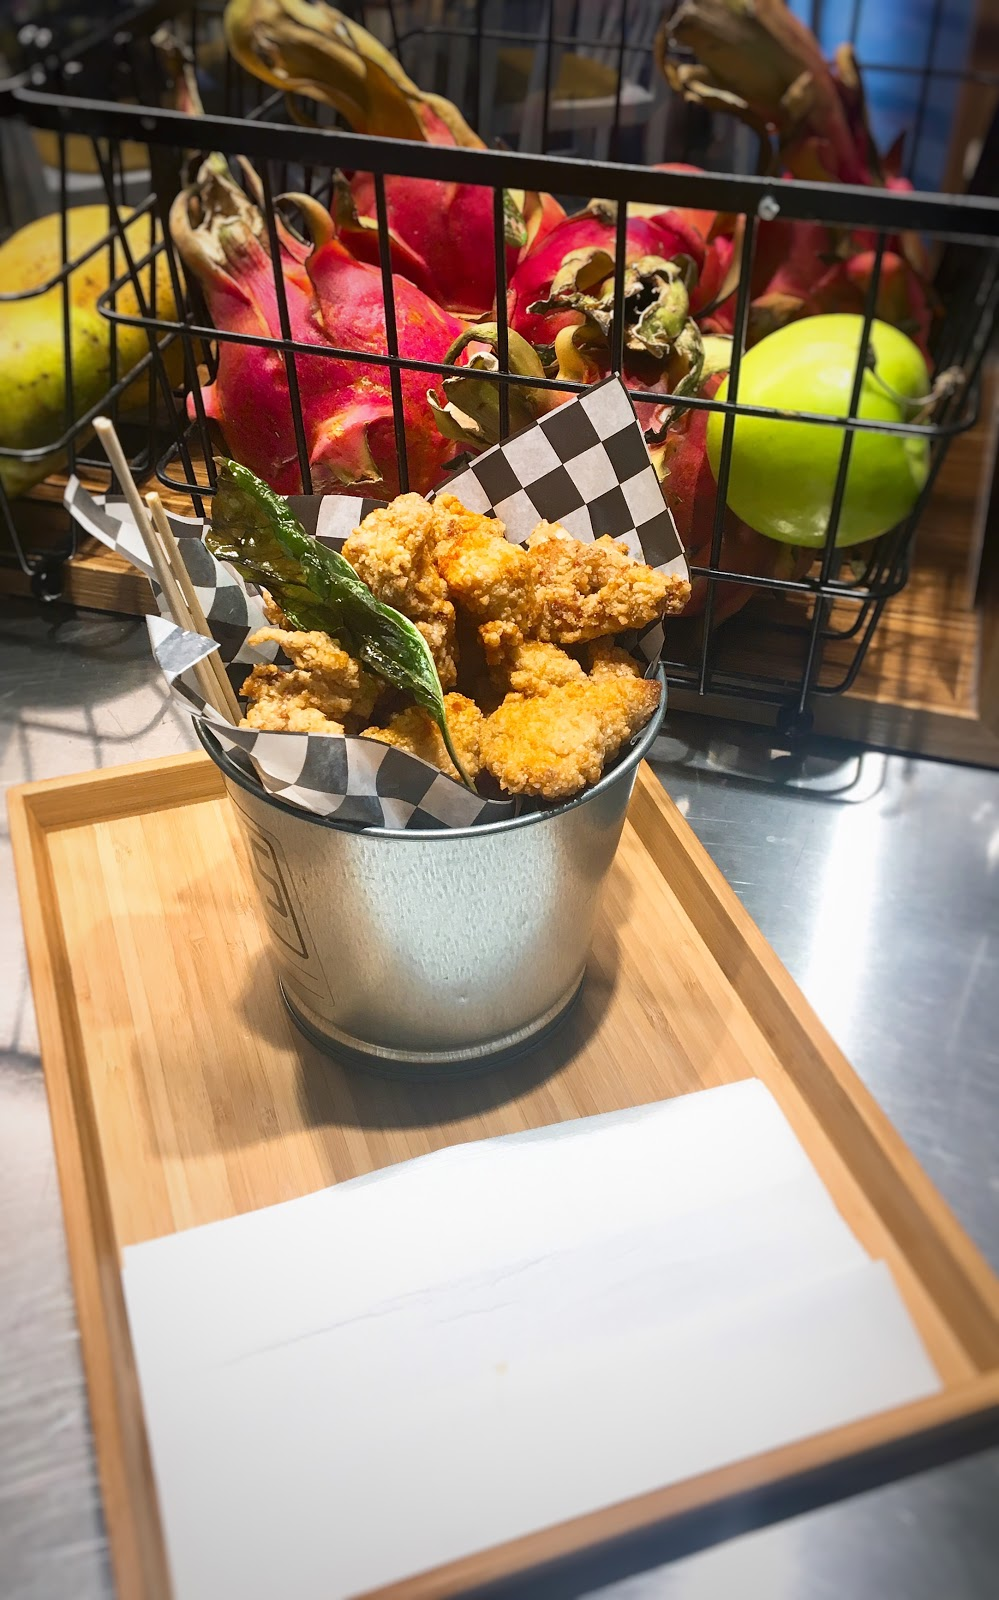 JusFruit West Market | cafe | 104 1851 Sirocco Dr SW, Calgary, AB T3H 4R5, Canada | 4038792686 OR +1 403-879-2686